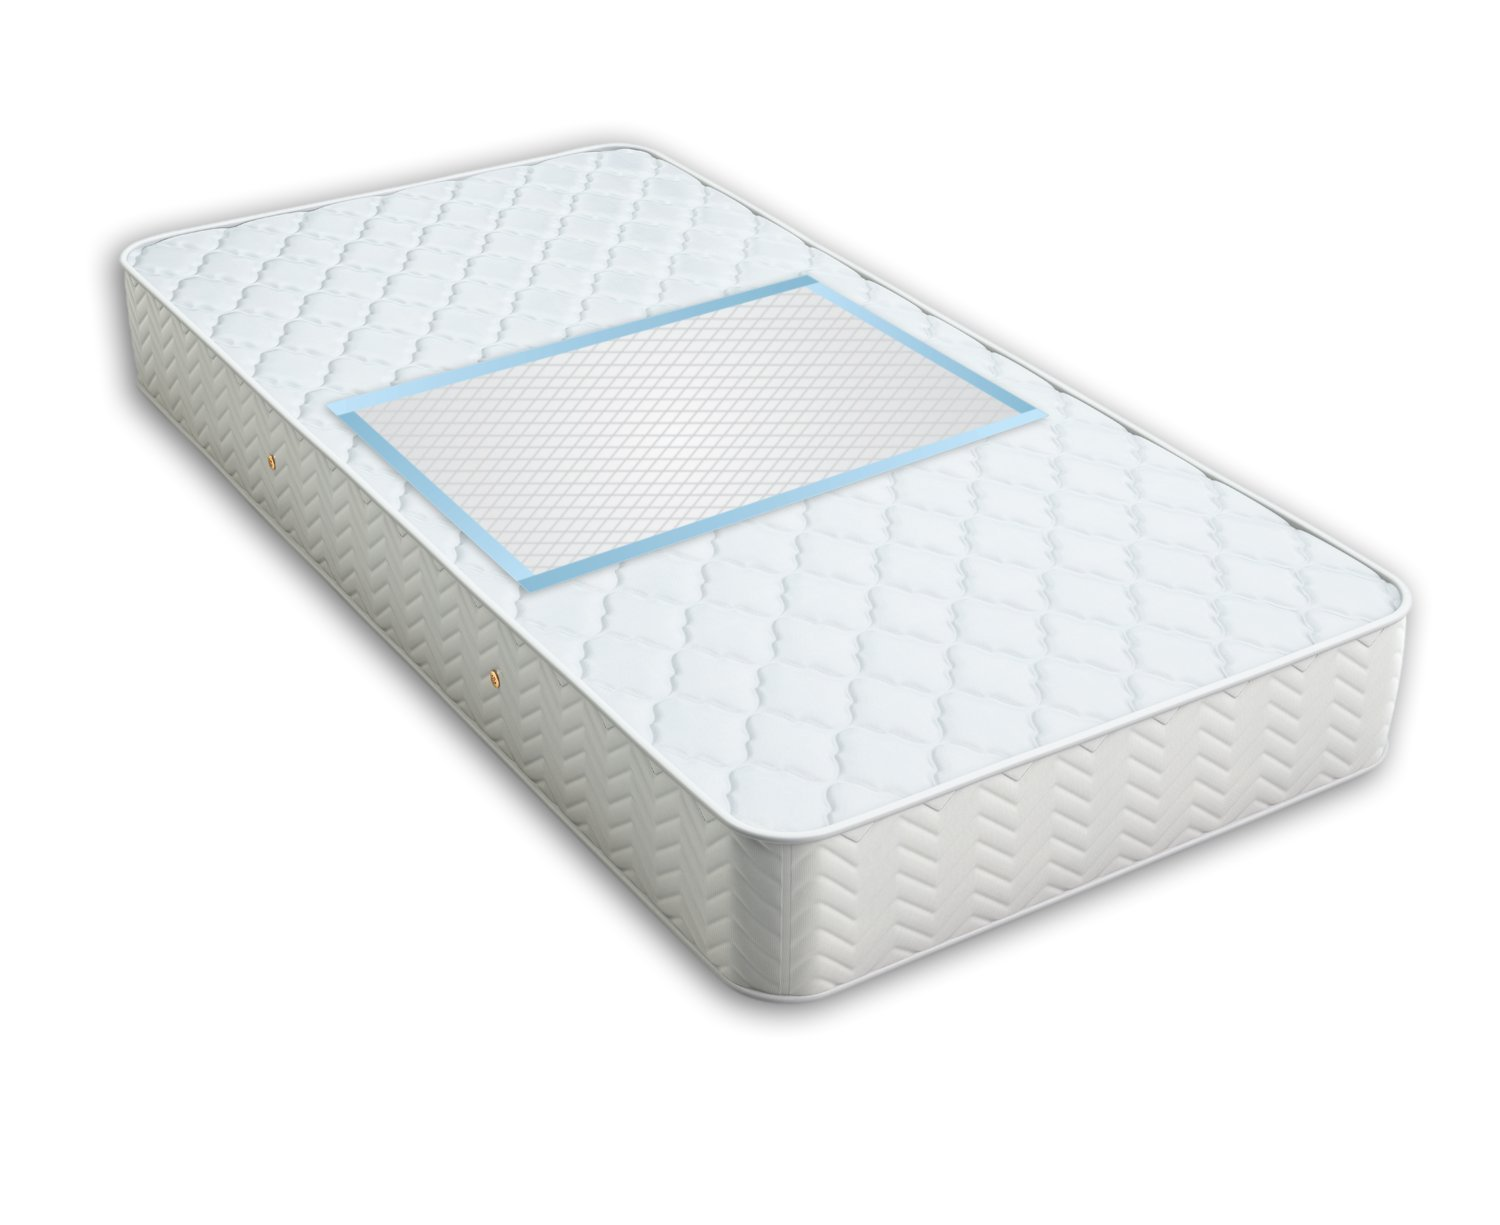 Inspire Disposable Chux Underpads, 23 Inches X 36 Inches, 300 Count by Inspire (Image #4)